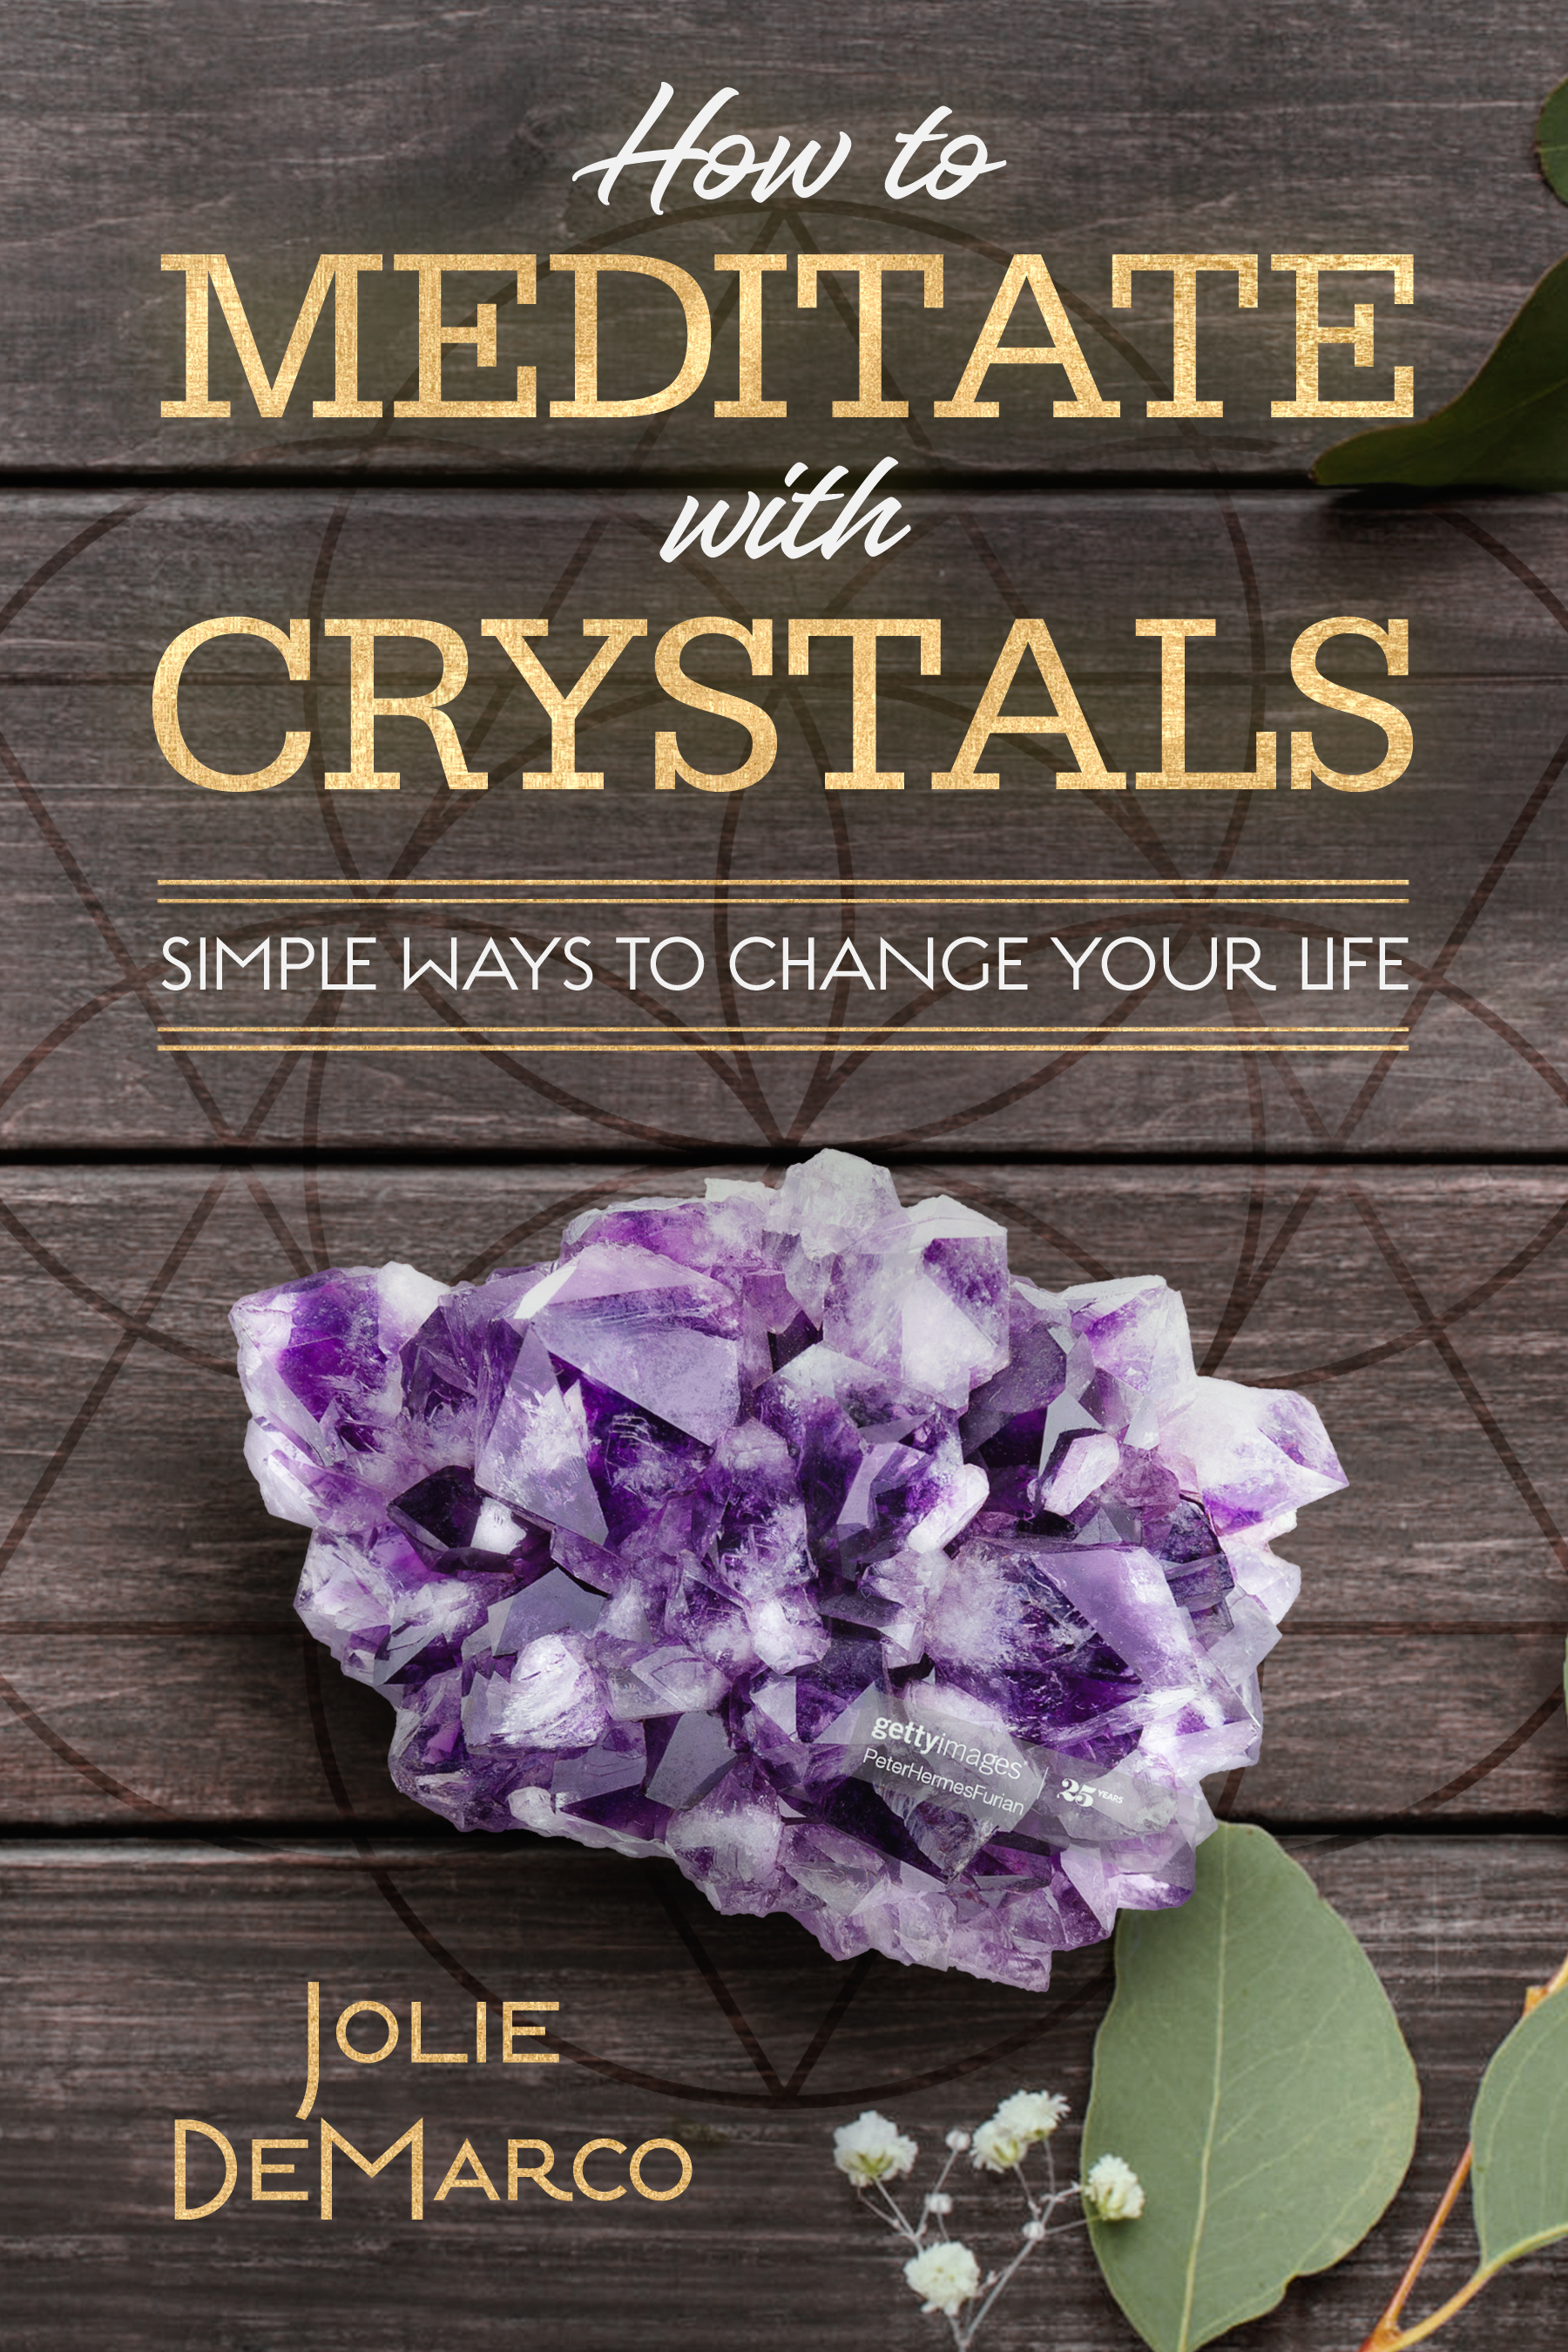 how-to-meditate-with-crystals-2b.jpg